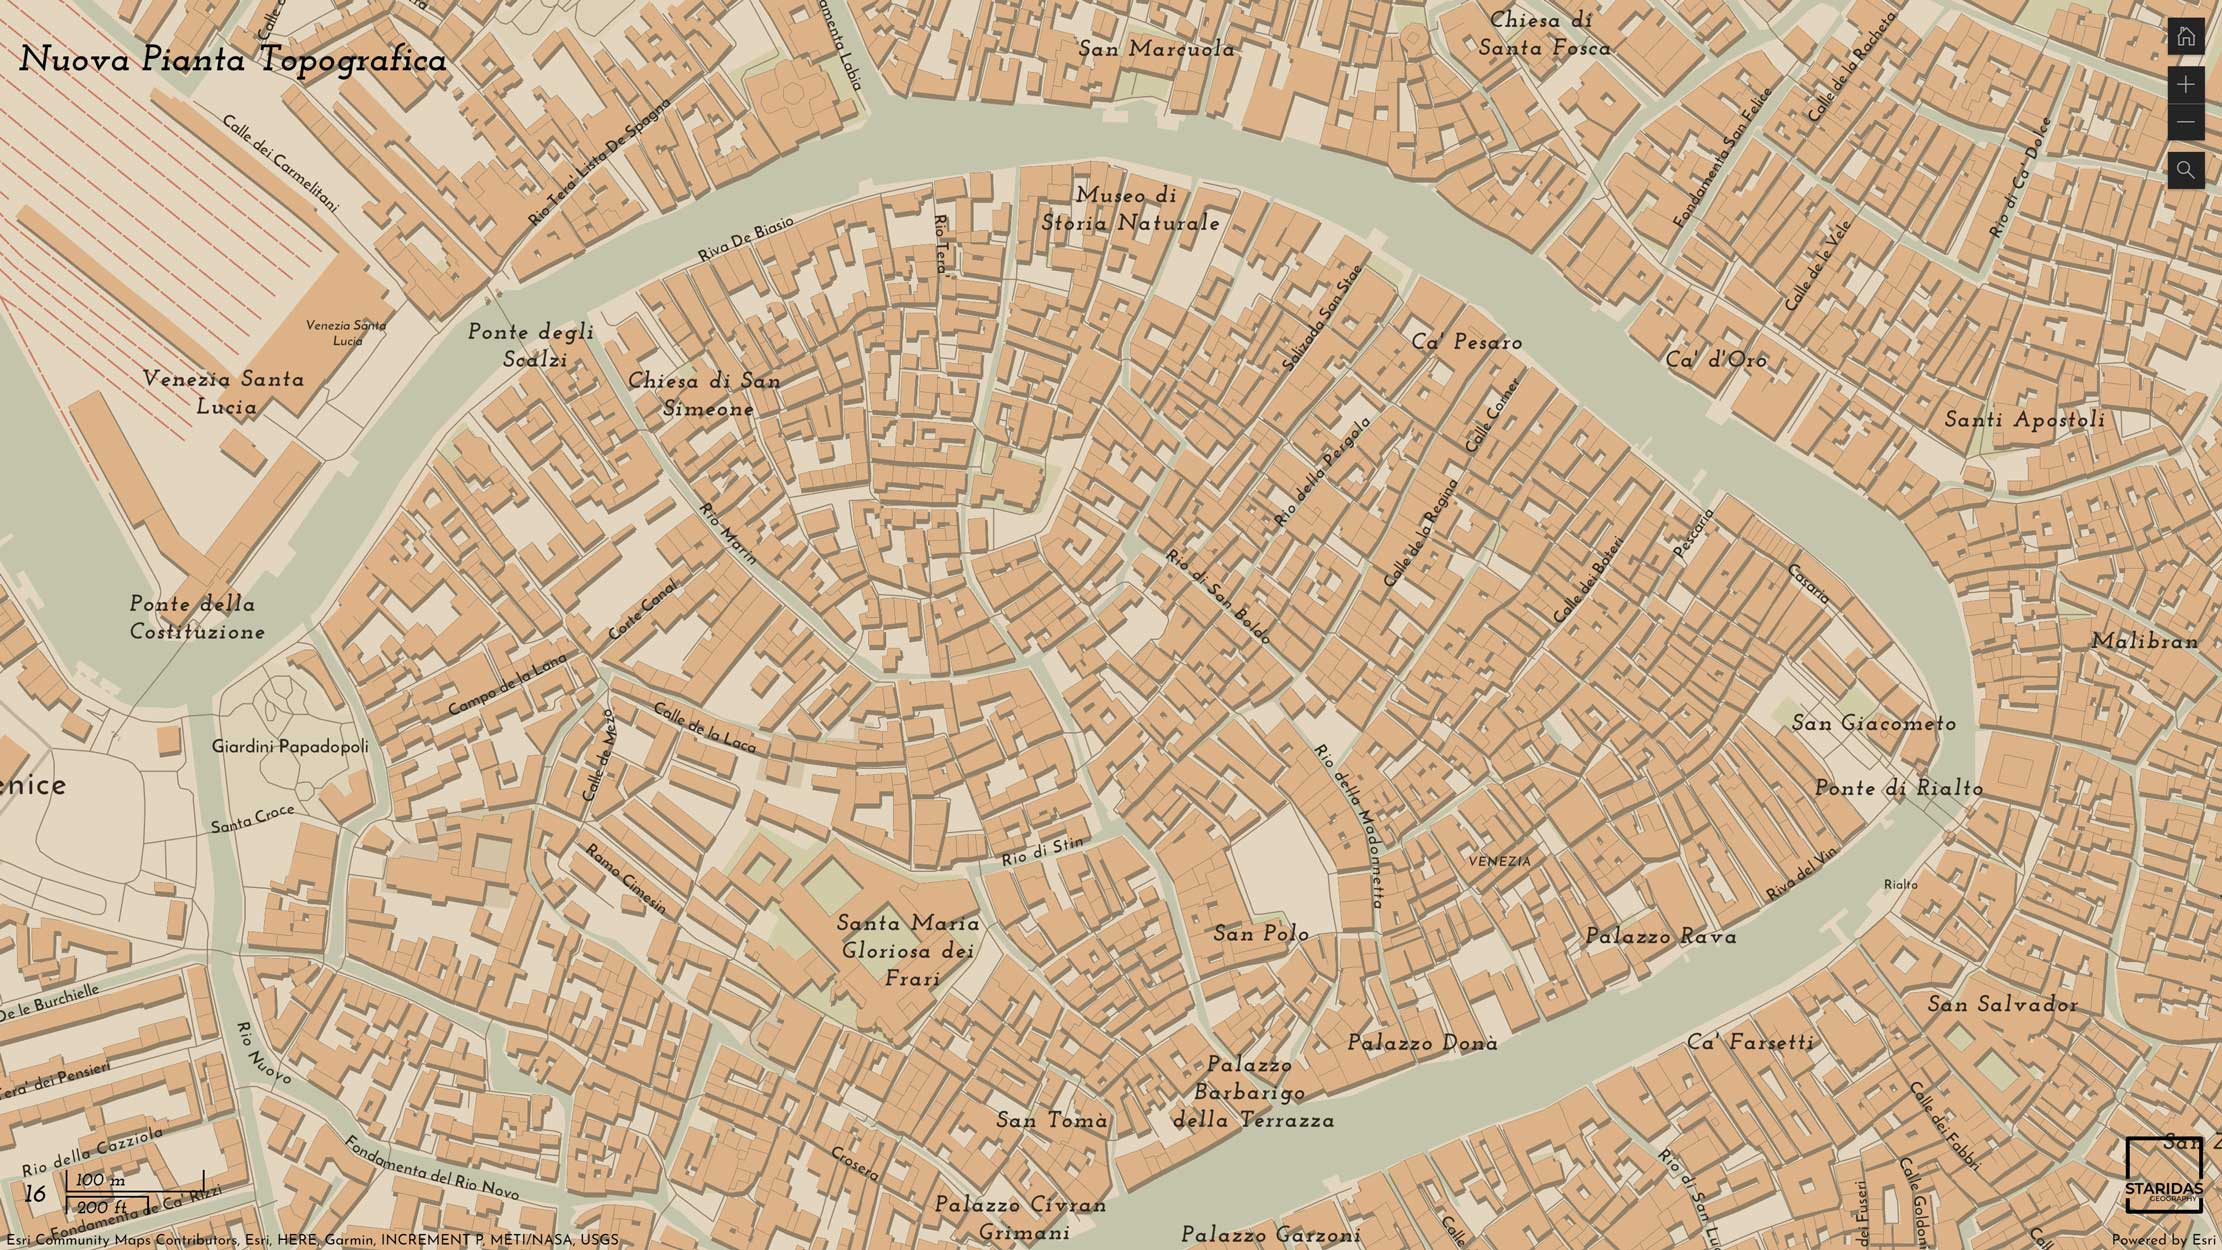 How to make a Vintage City style for Esri Vector Basemaps – Part 2